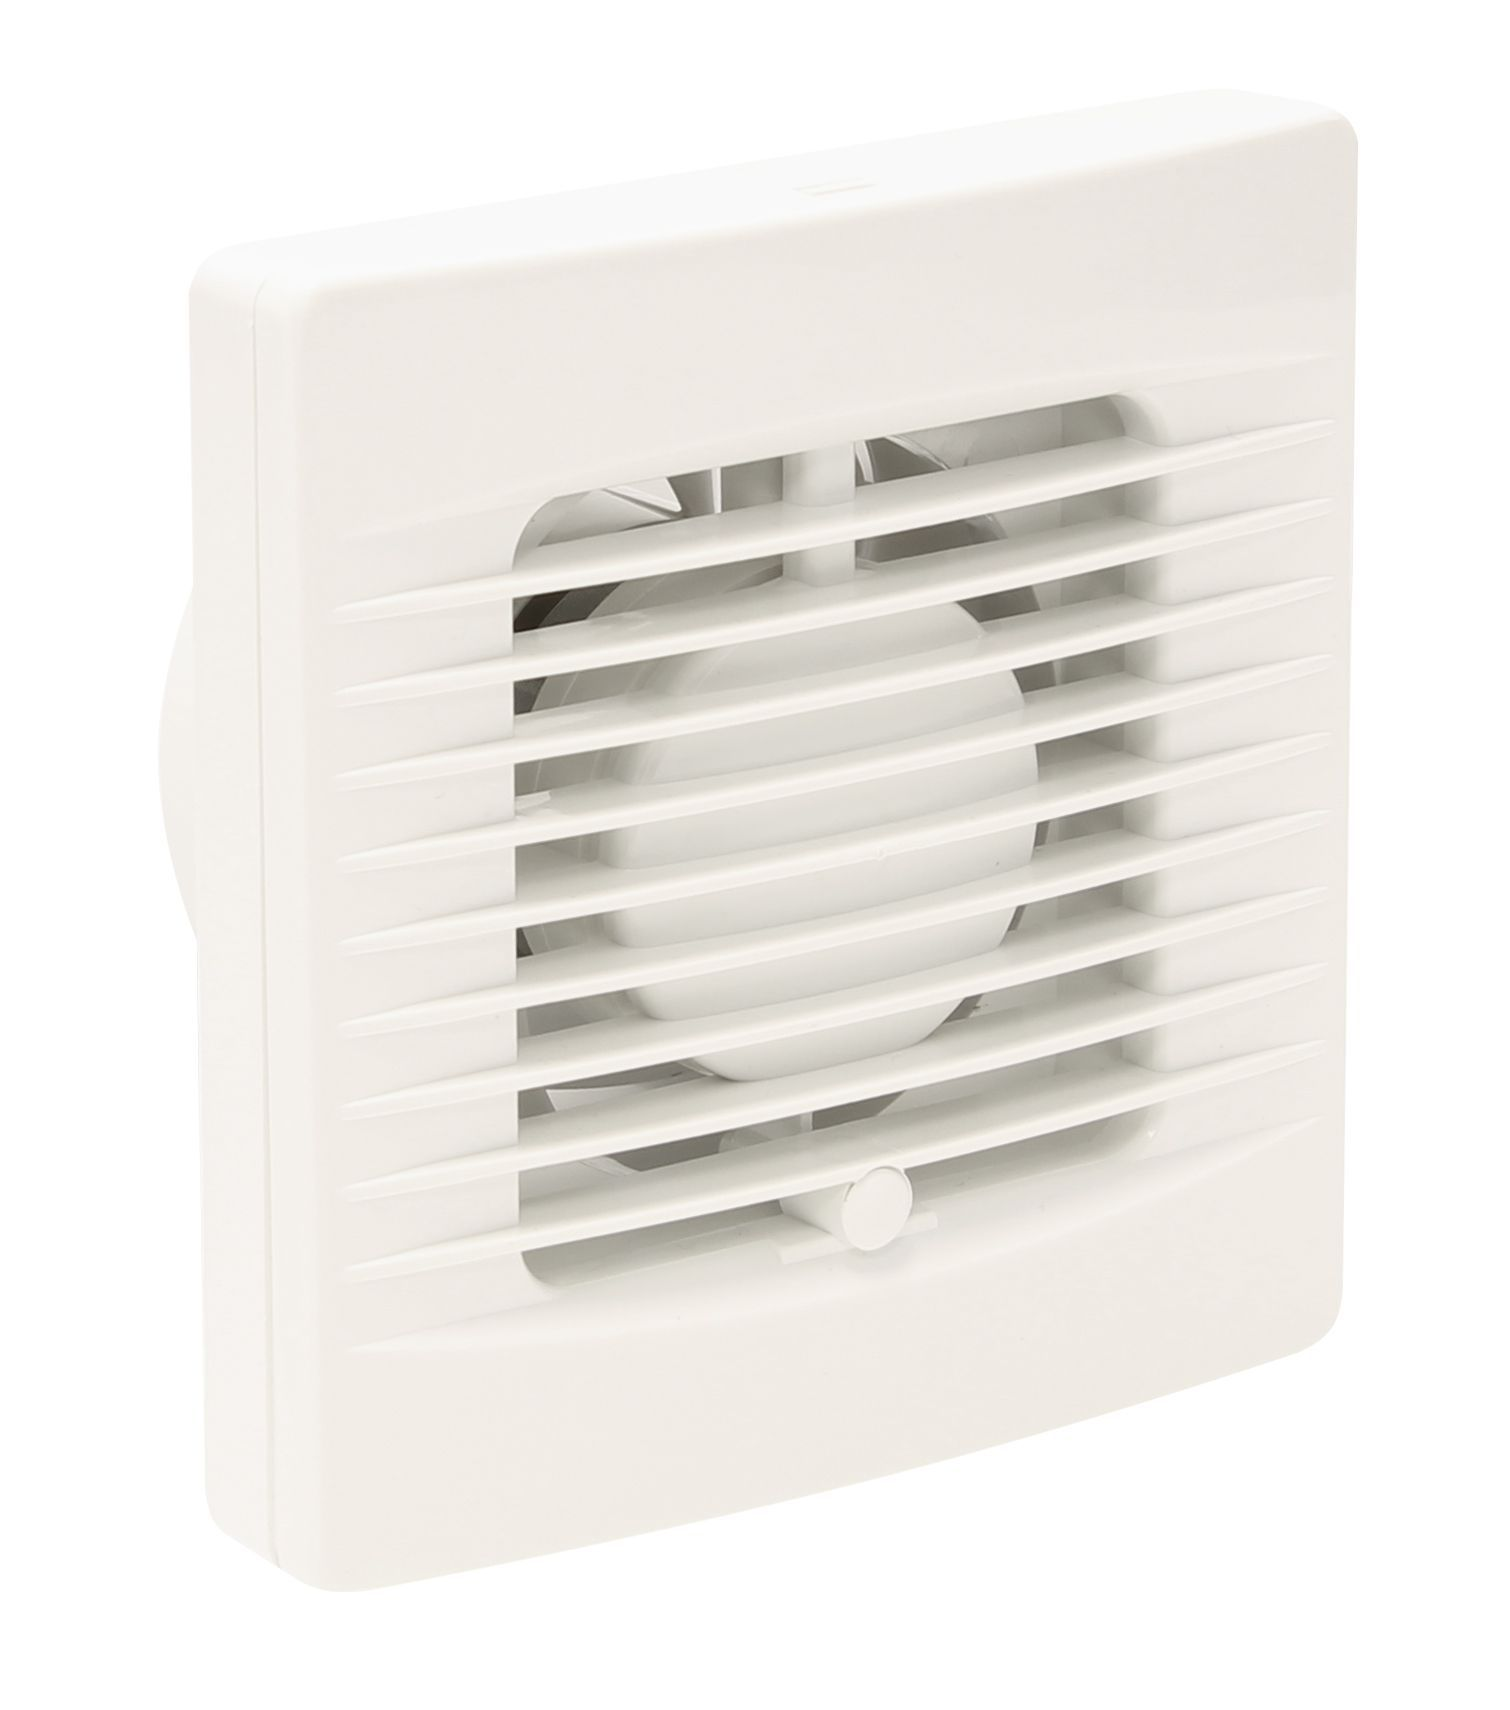 Bathroom extractor fans with timer - Manrose Vxf100t Bathroom Extractor Fan With Timer